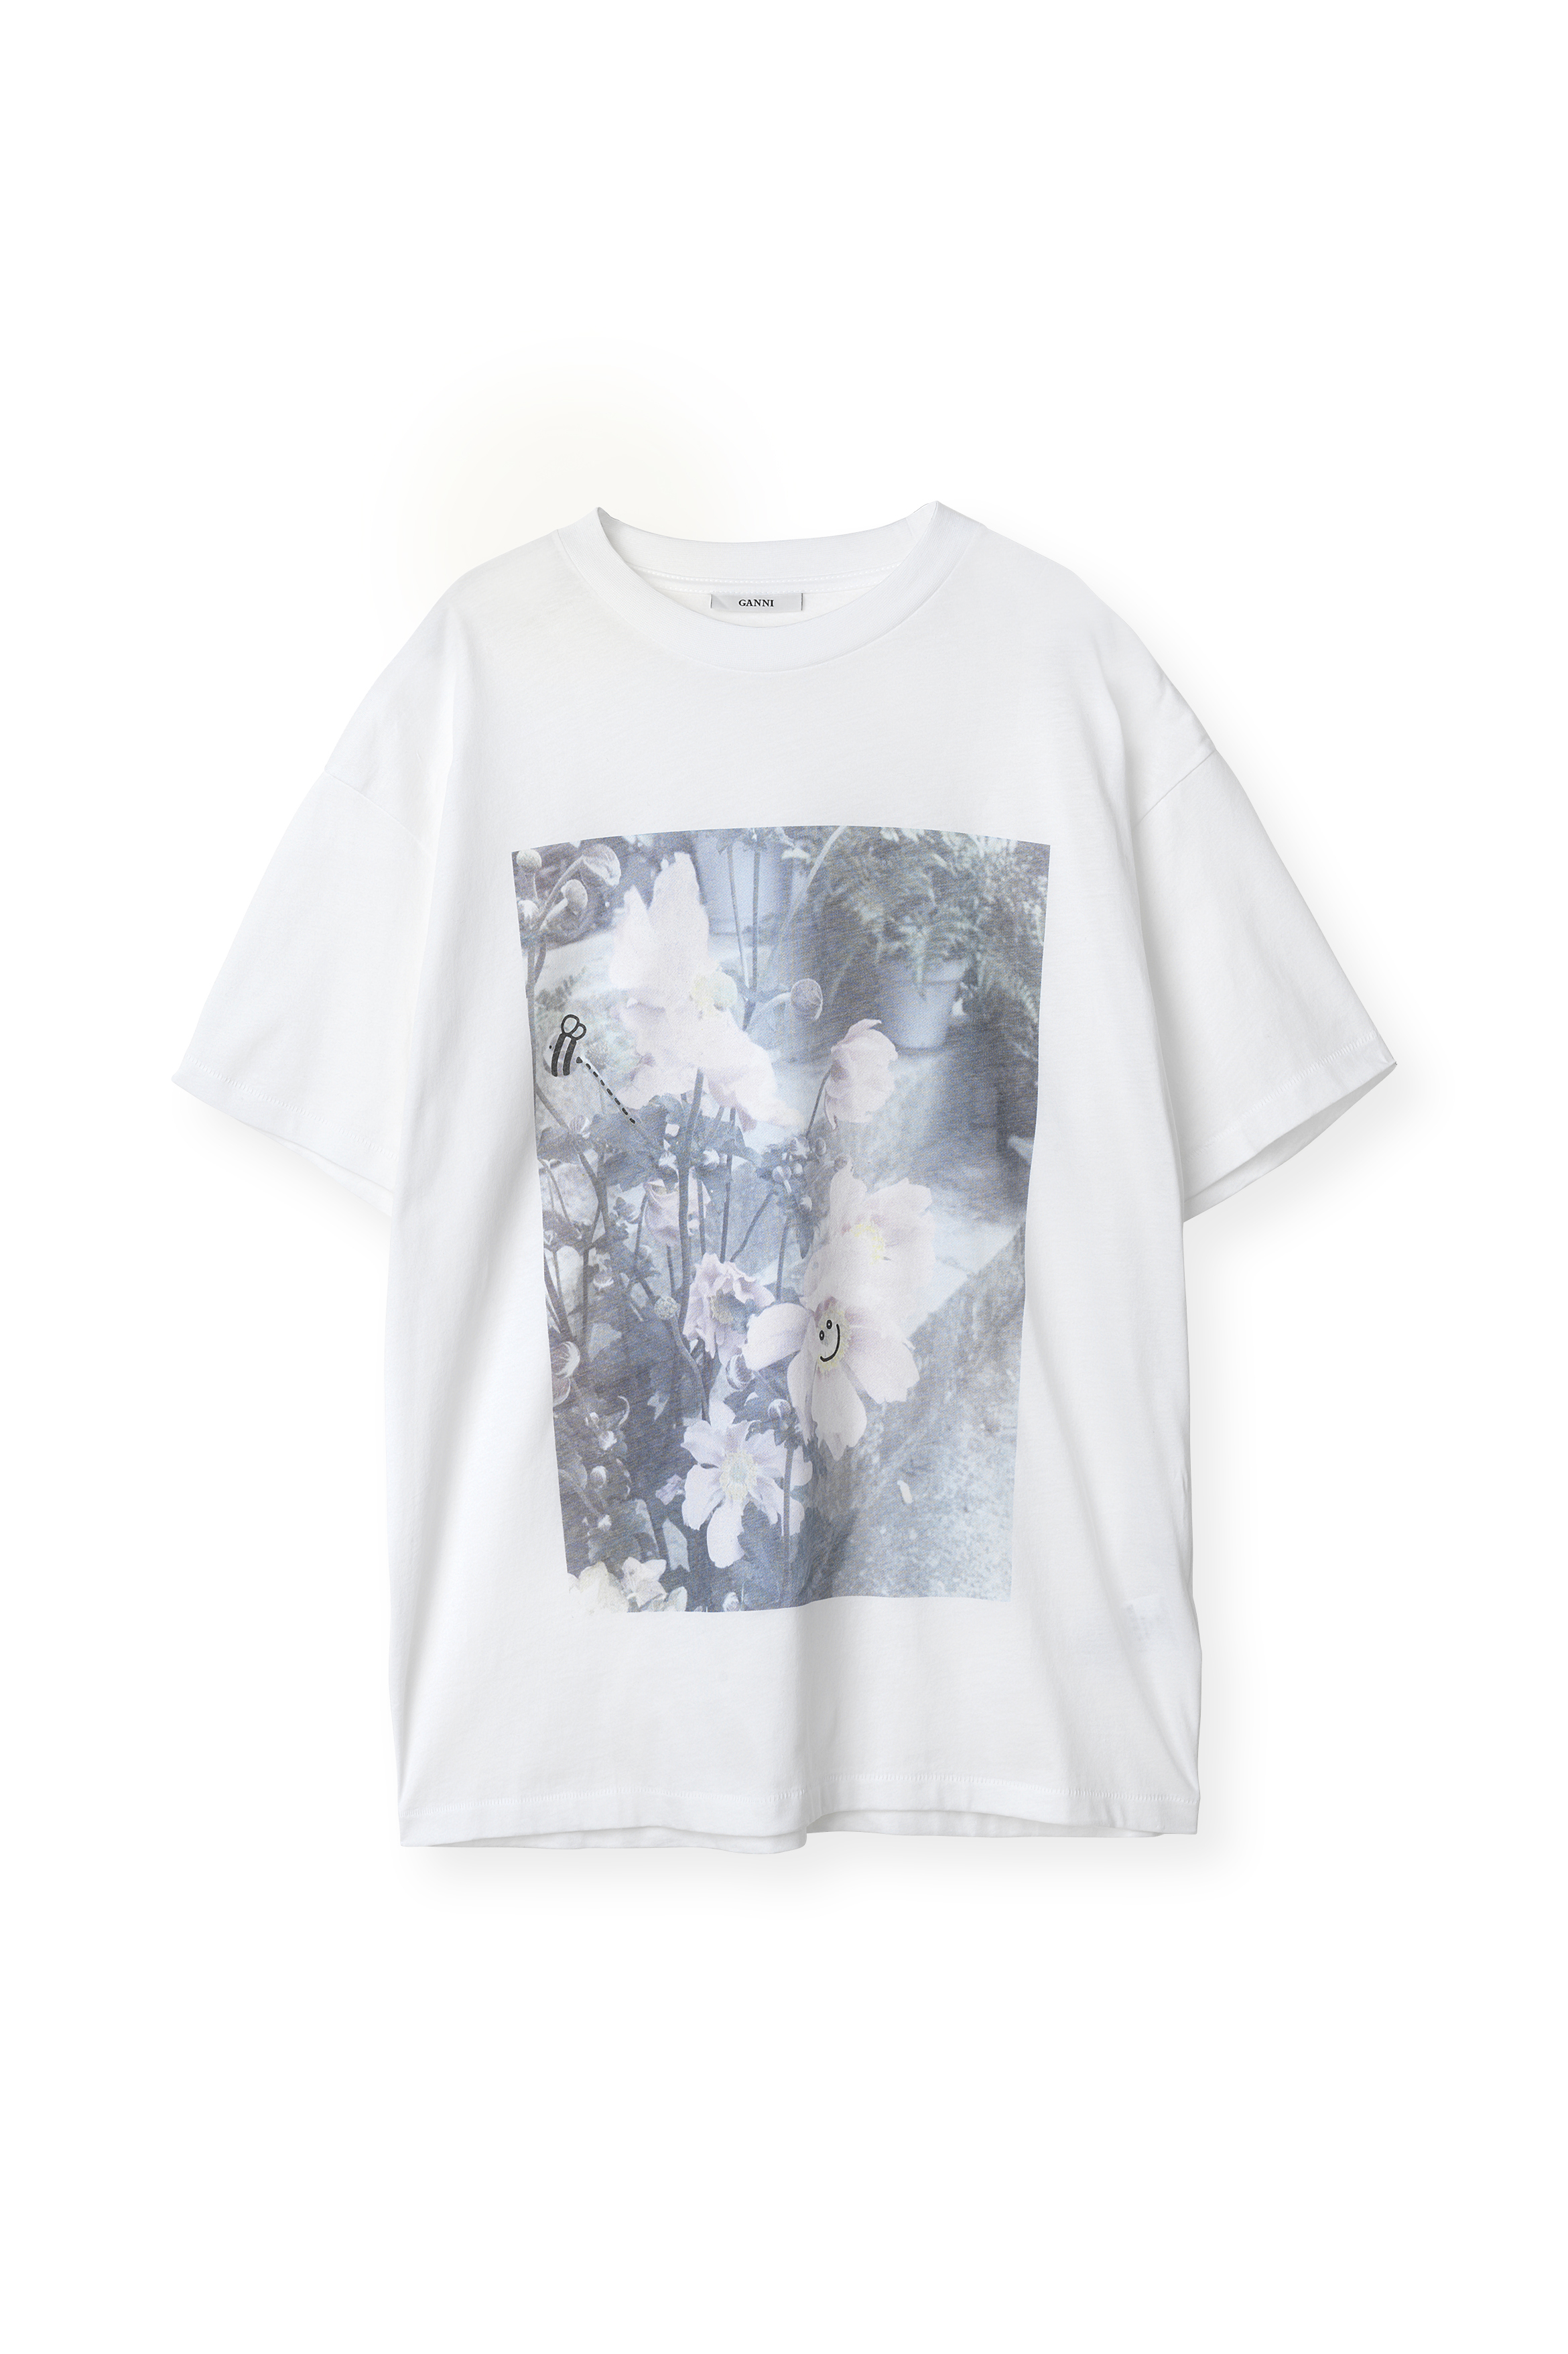 Ganni Davis T-shirt Bright White, t2099